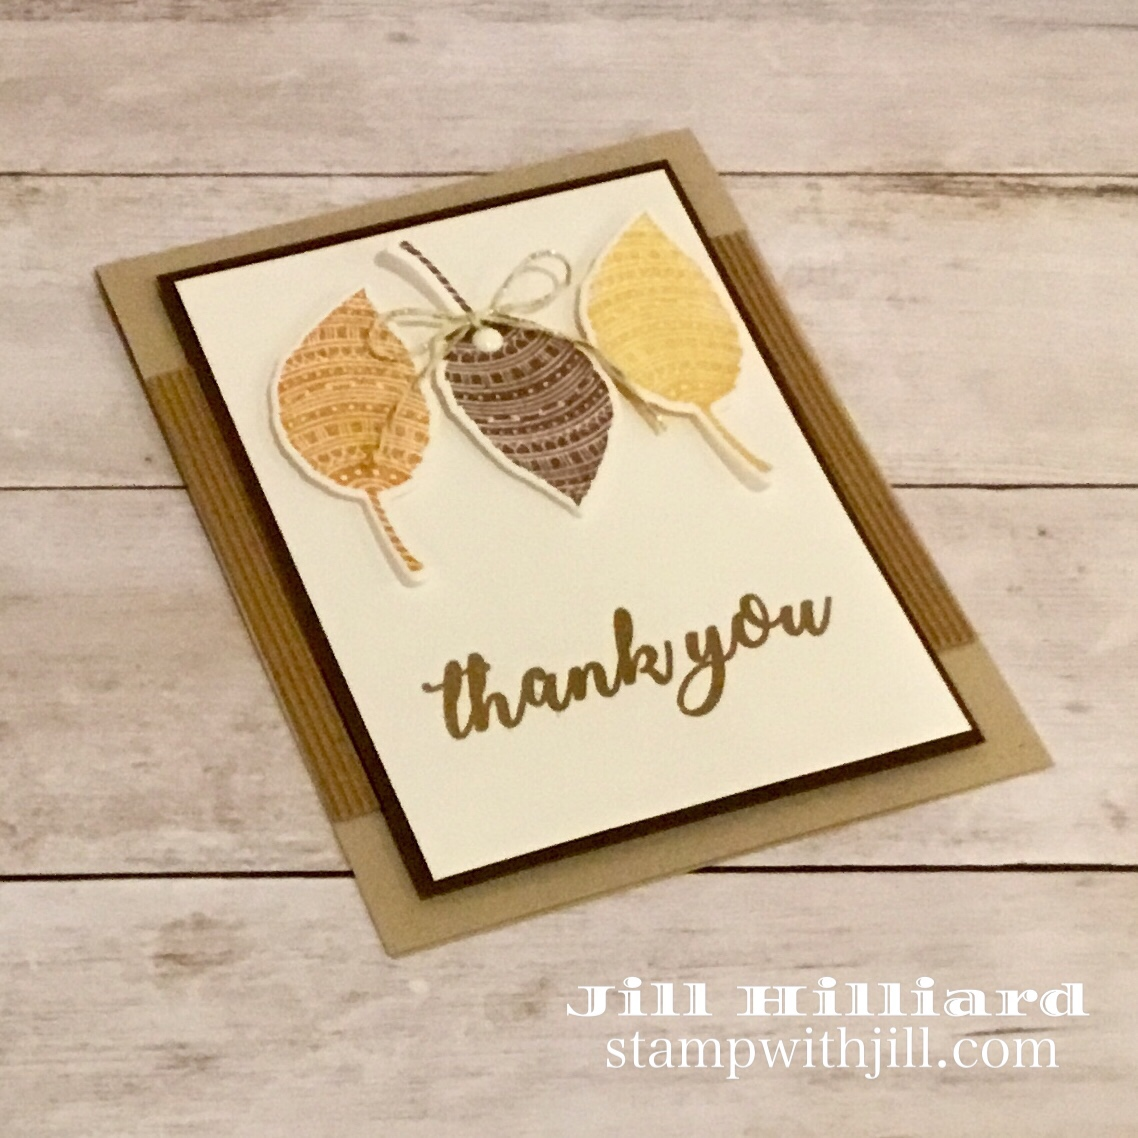 Zen Leave and Gold Heat Embossing, Fun Stampers Journey, Jill Hilliard, Stamp with Jill